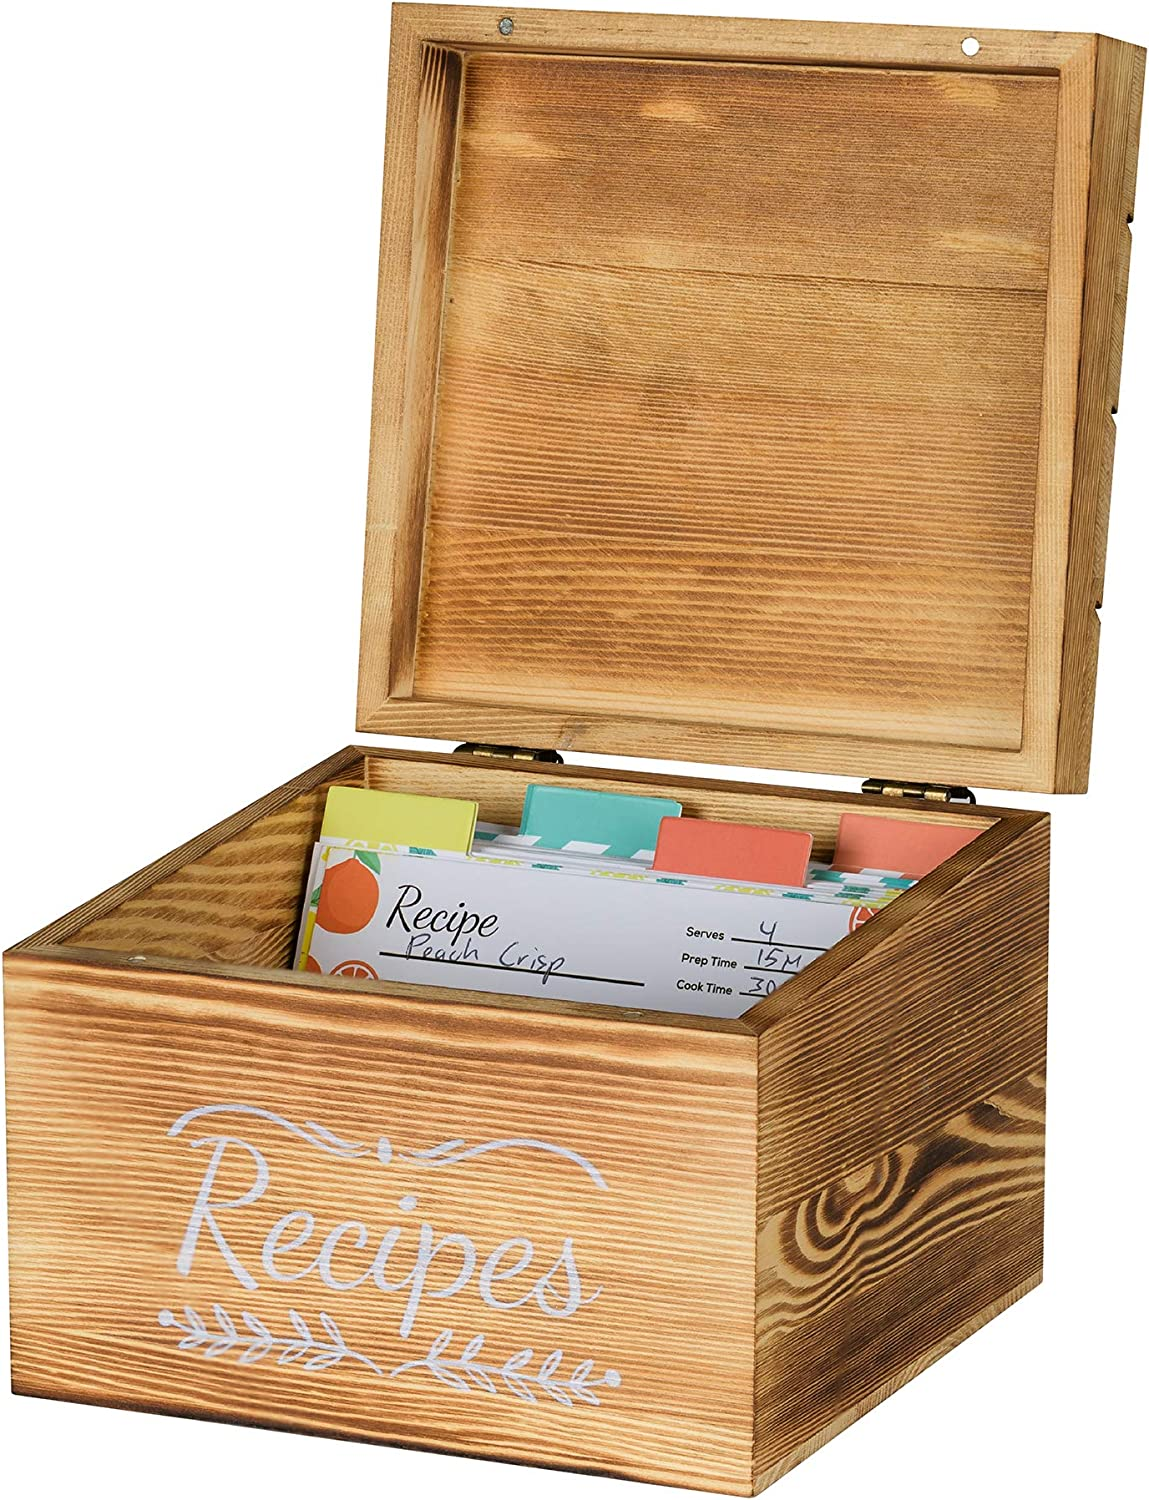 Pinelive TriSlot Recipe Box with Cards and Dividers - Rustic Wood Recipe Box with 76 Blank Recipe Cards 4x6, 8x Dividers and Measurements. For Kitchen, or Recipe Cards for Bridal Shower Gift(TL Black)